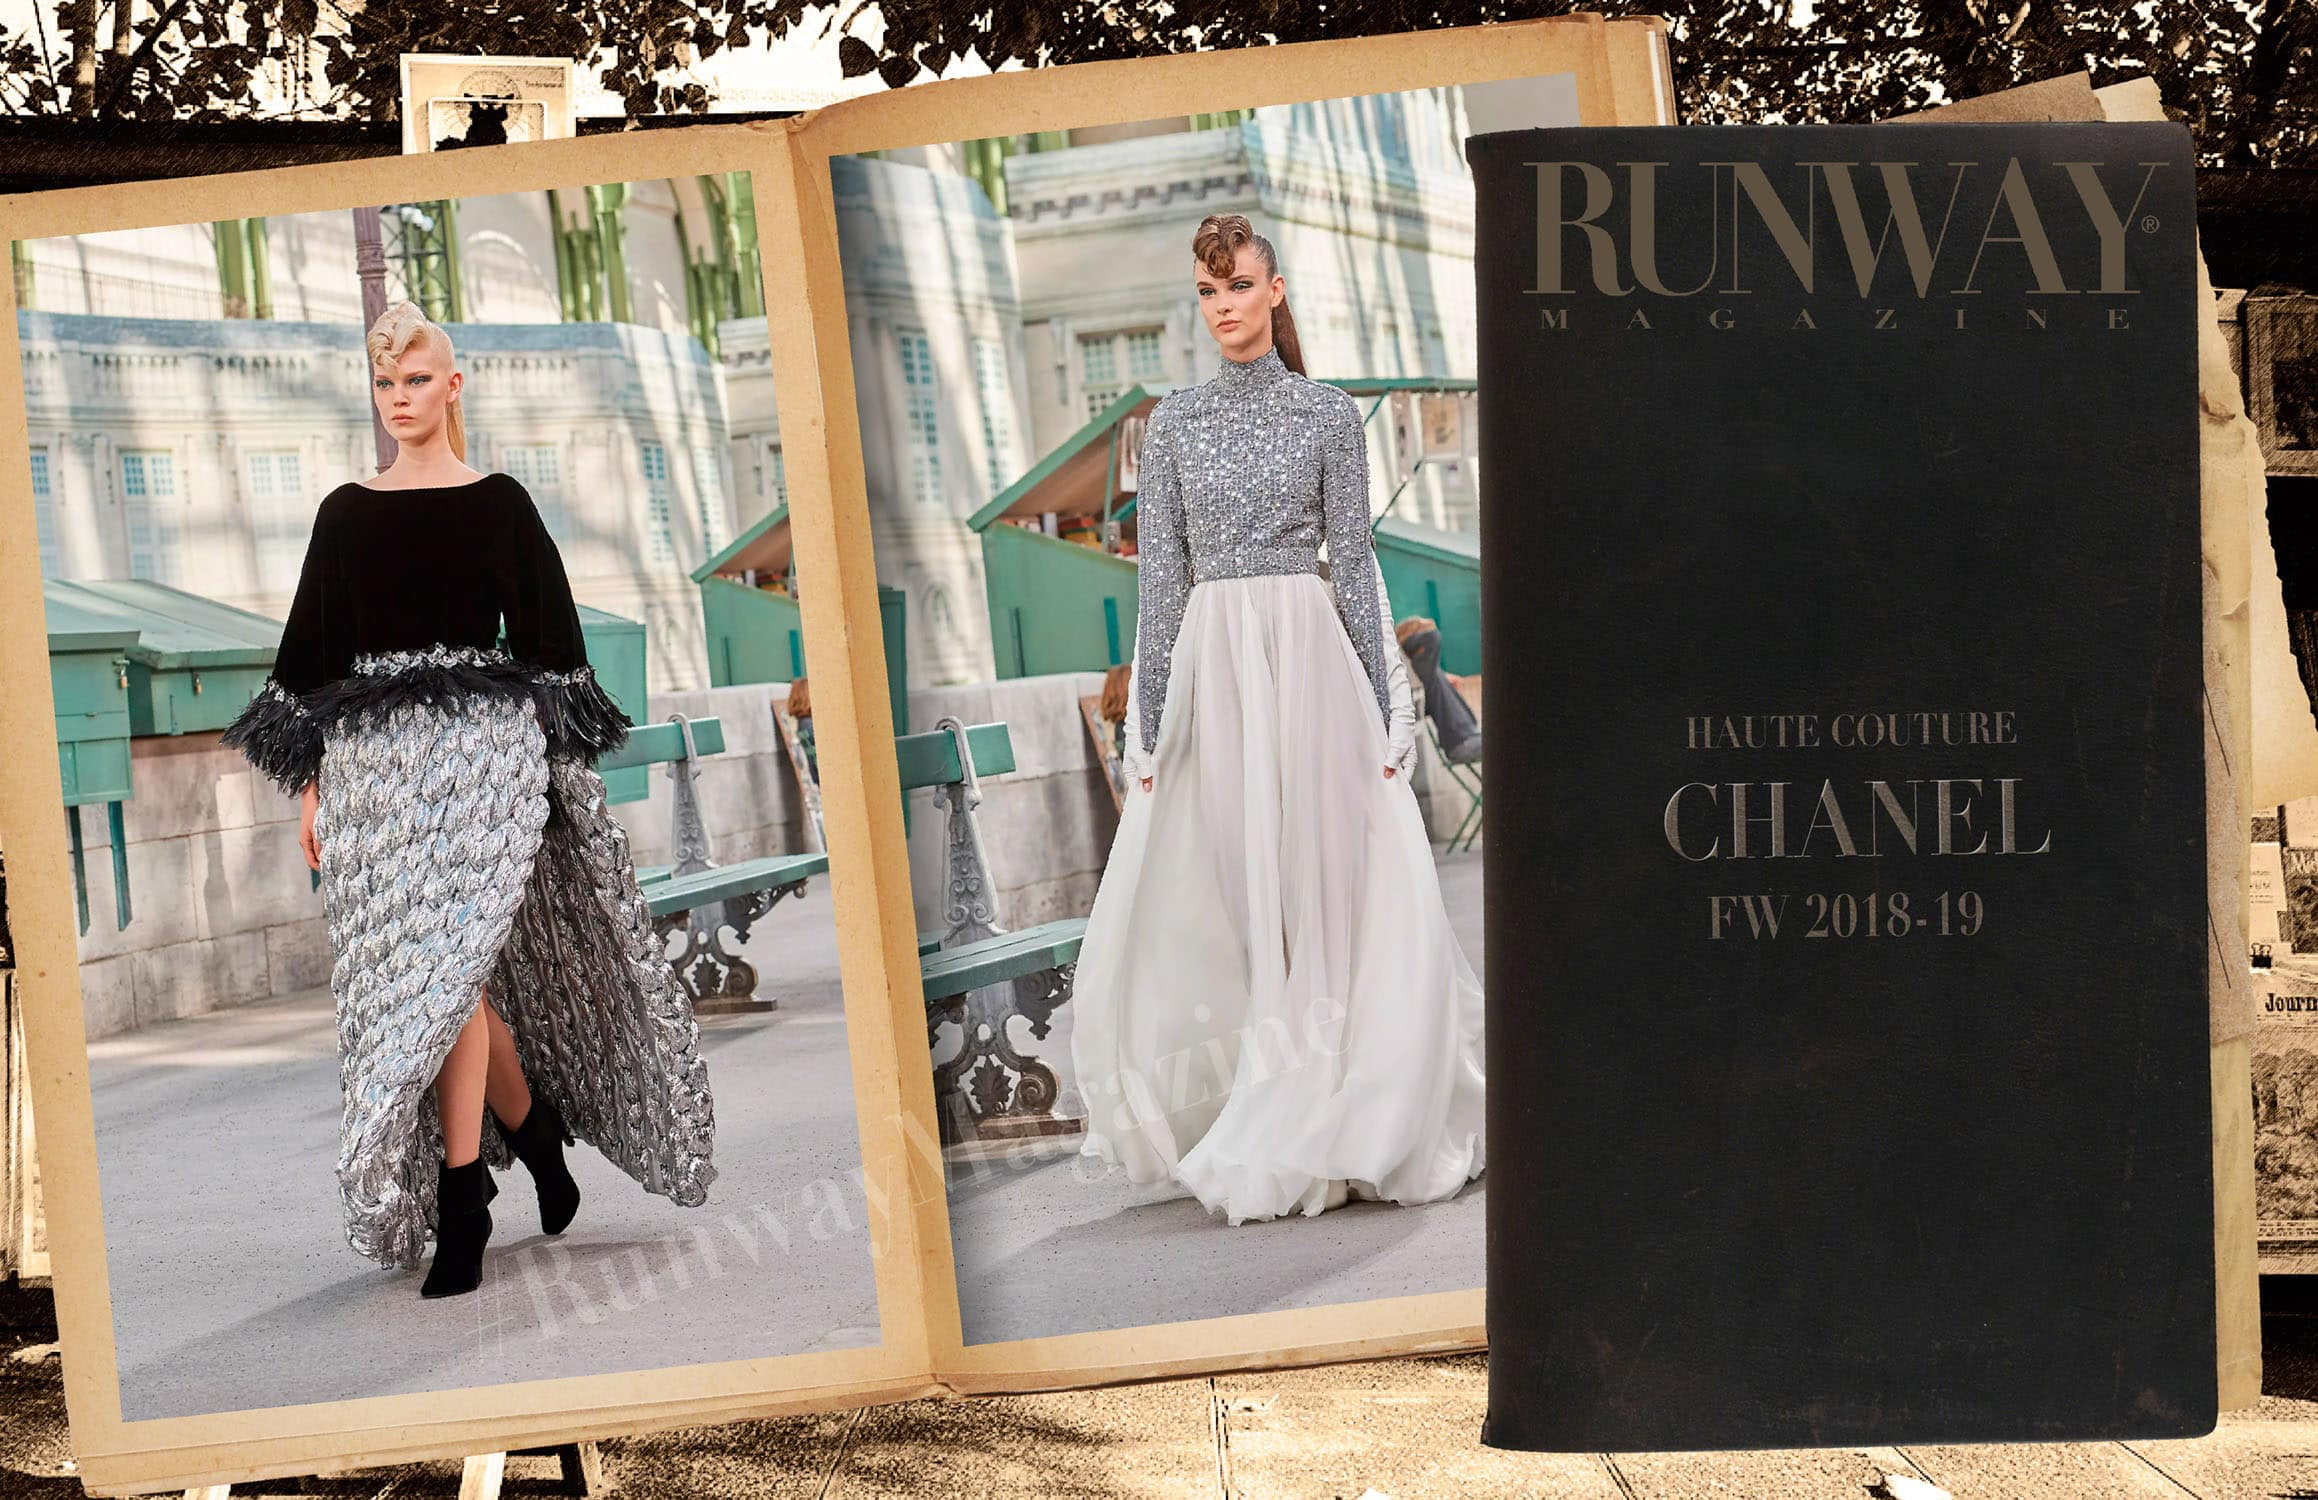 Chanel Haute Couture Fall-Winter 2018-19 by RUNWAY MAGAZINE